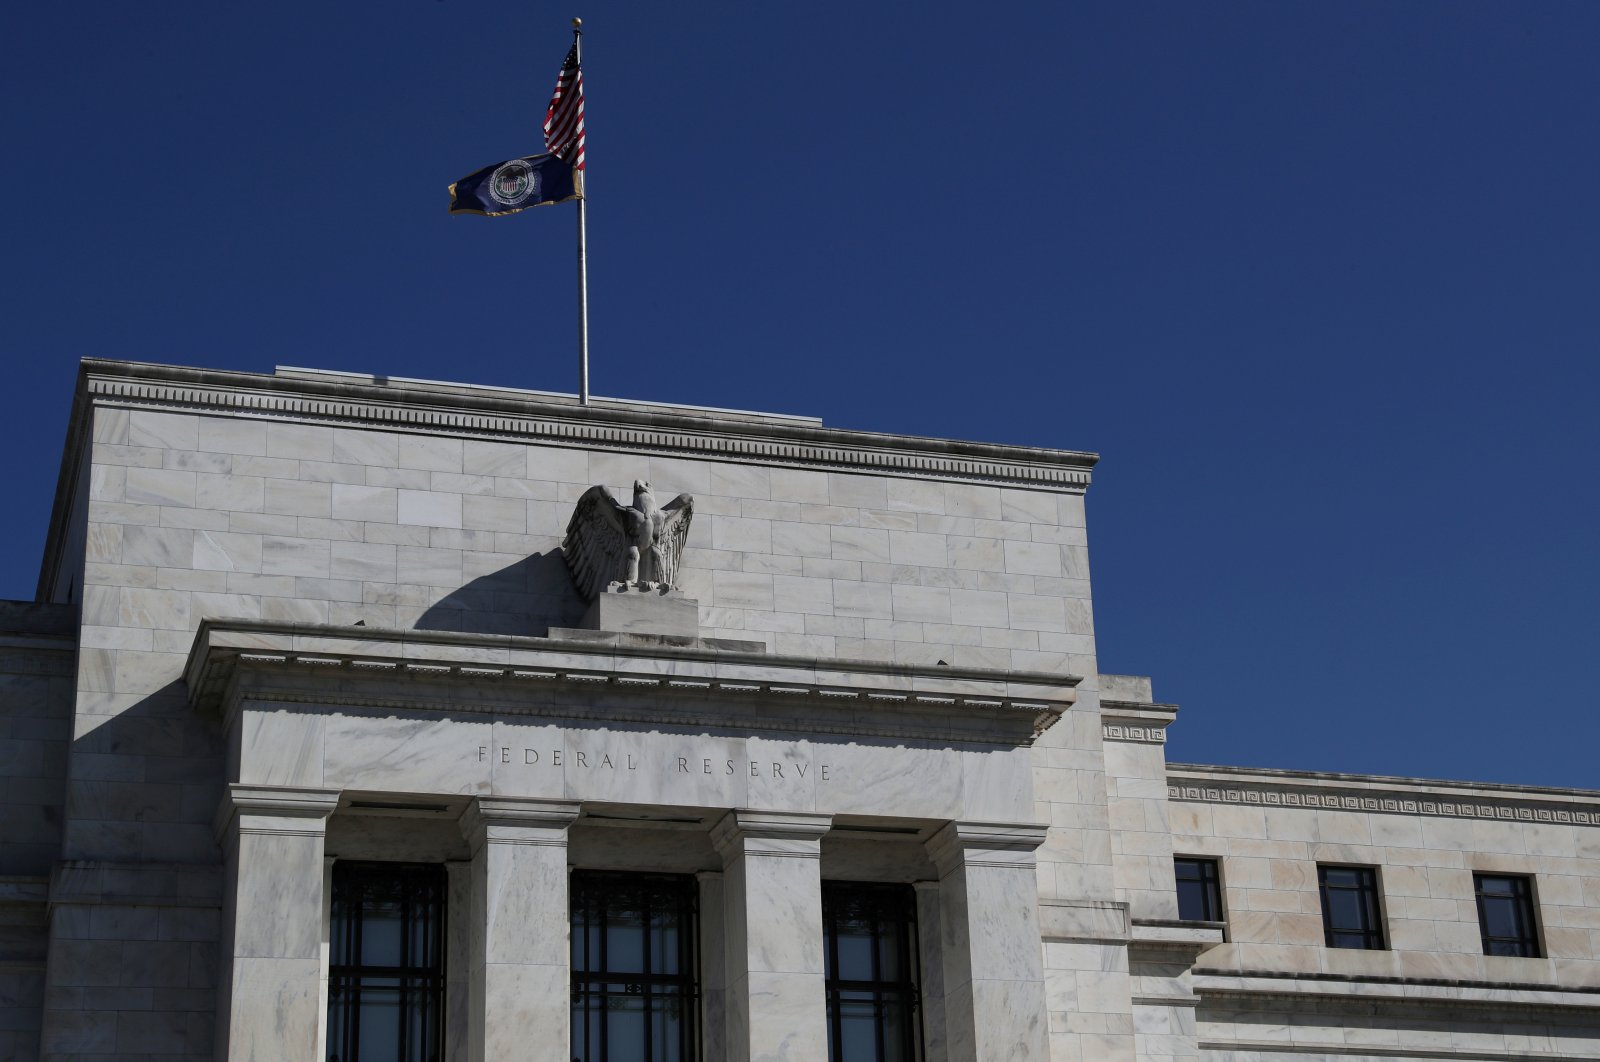 The U.S. Federal Reserve Board building on Constitution Avenue, Washington, U.S., March 19, 2019. (Reuters Photo)